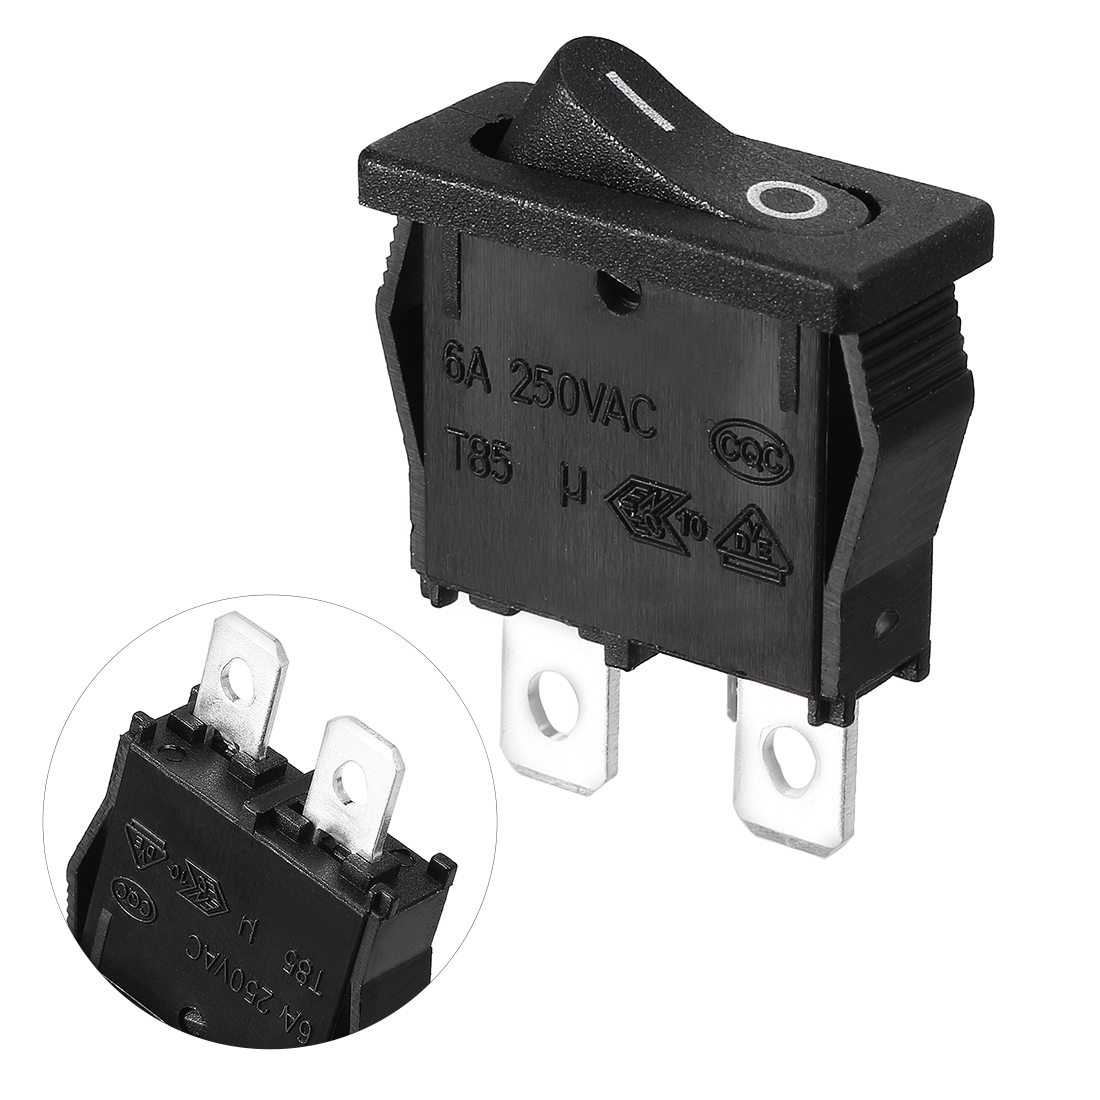 AC 250V 6A 10A 125V 2 Wire Lead SPST On / Off Mini Snap In Boat Rocker Switch